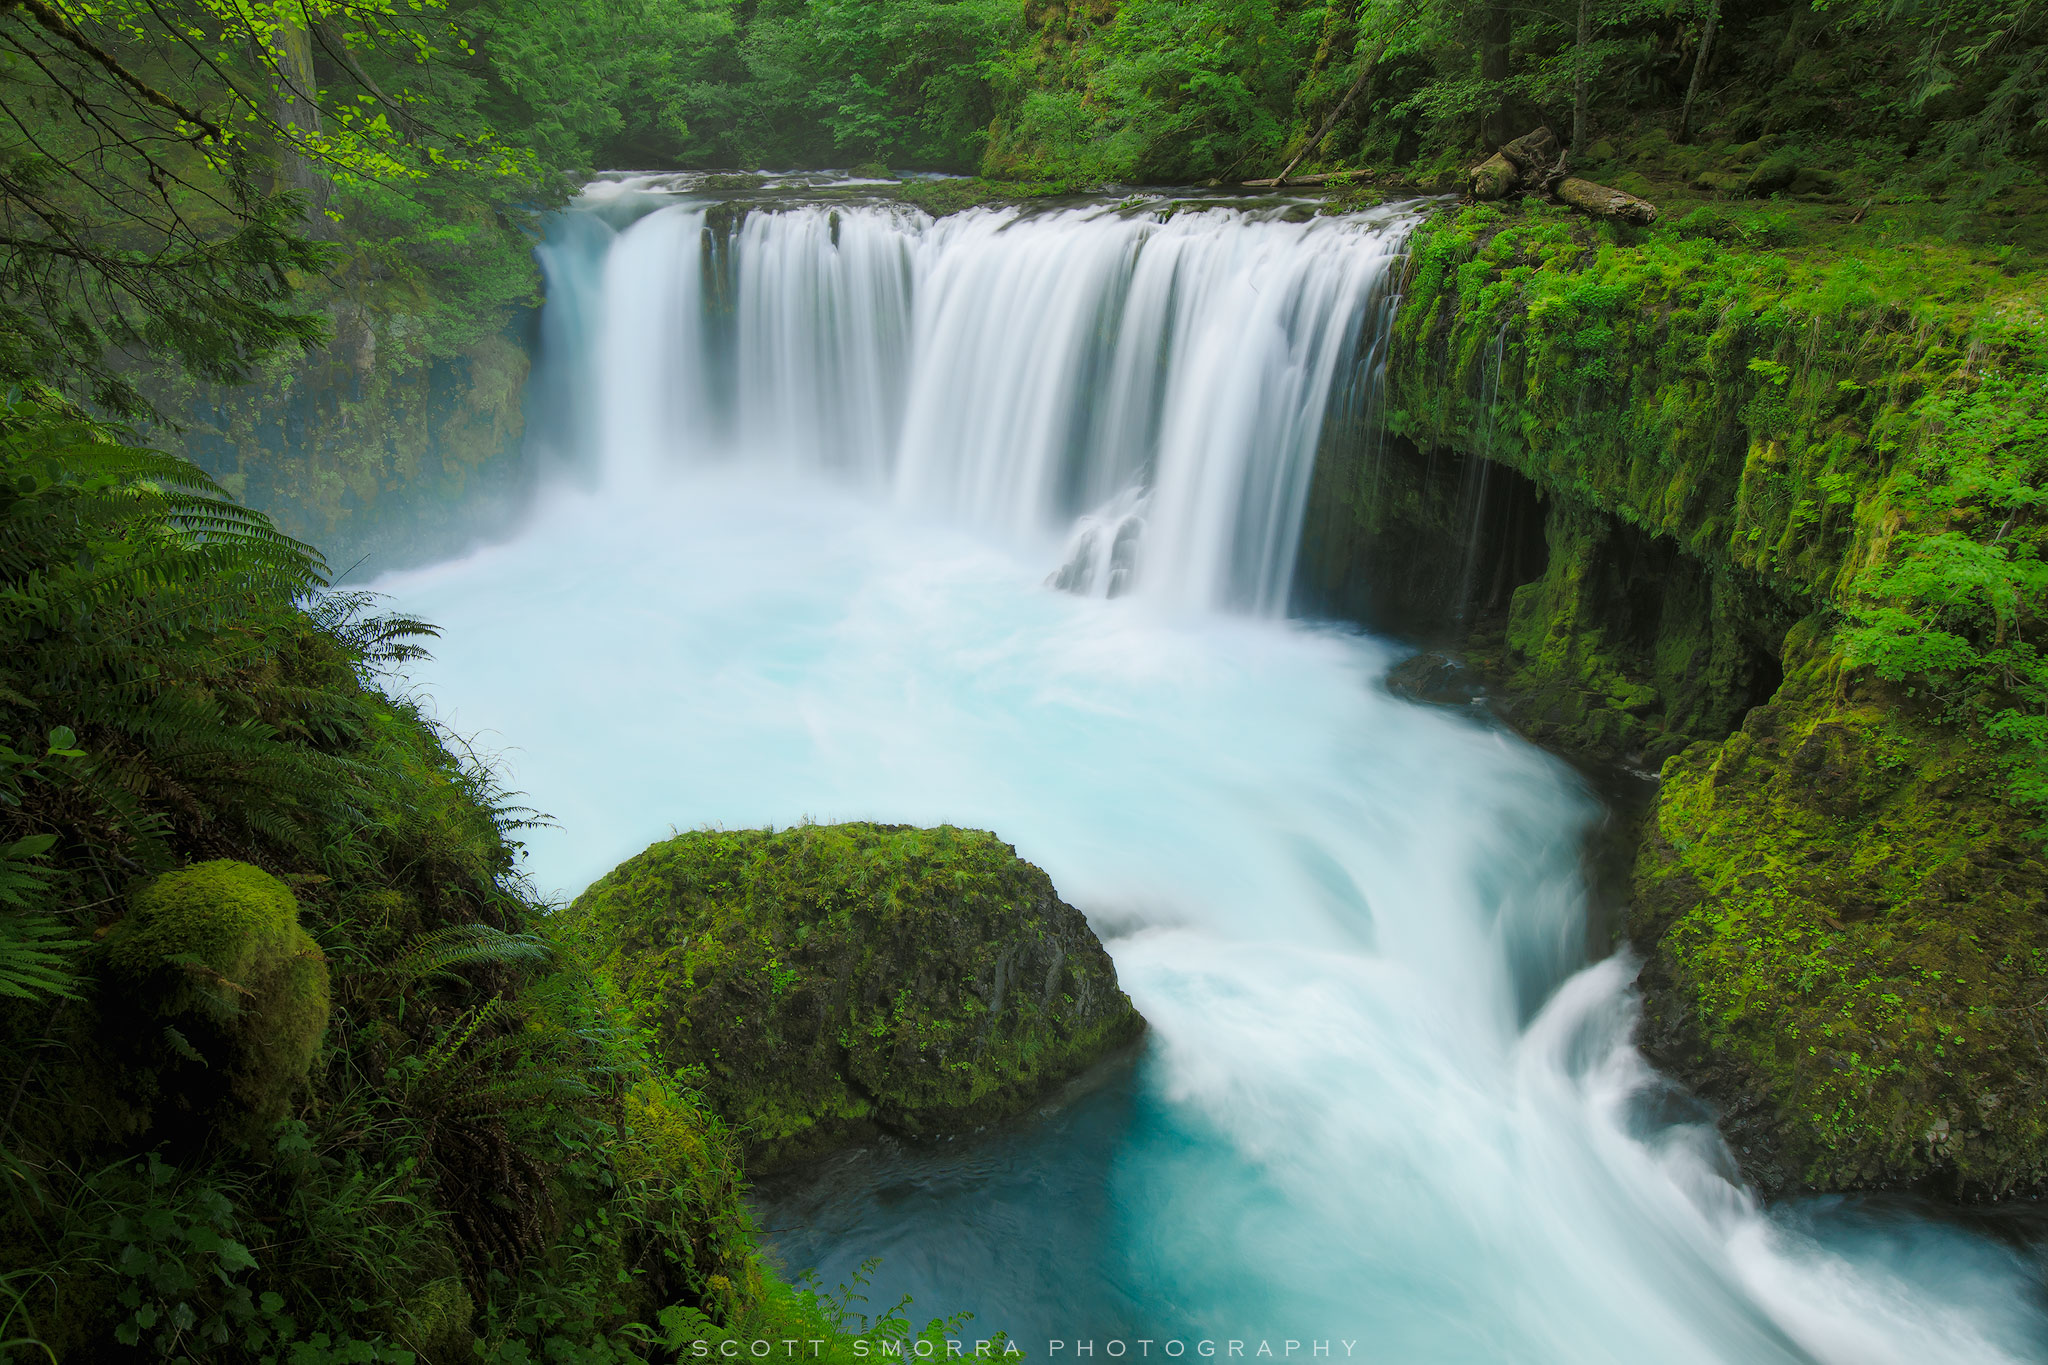 Fine Art Limited Edition of 100 - High water and peak spring greens at one of my favorite waterfalls in the Columbia River Gorge...